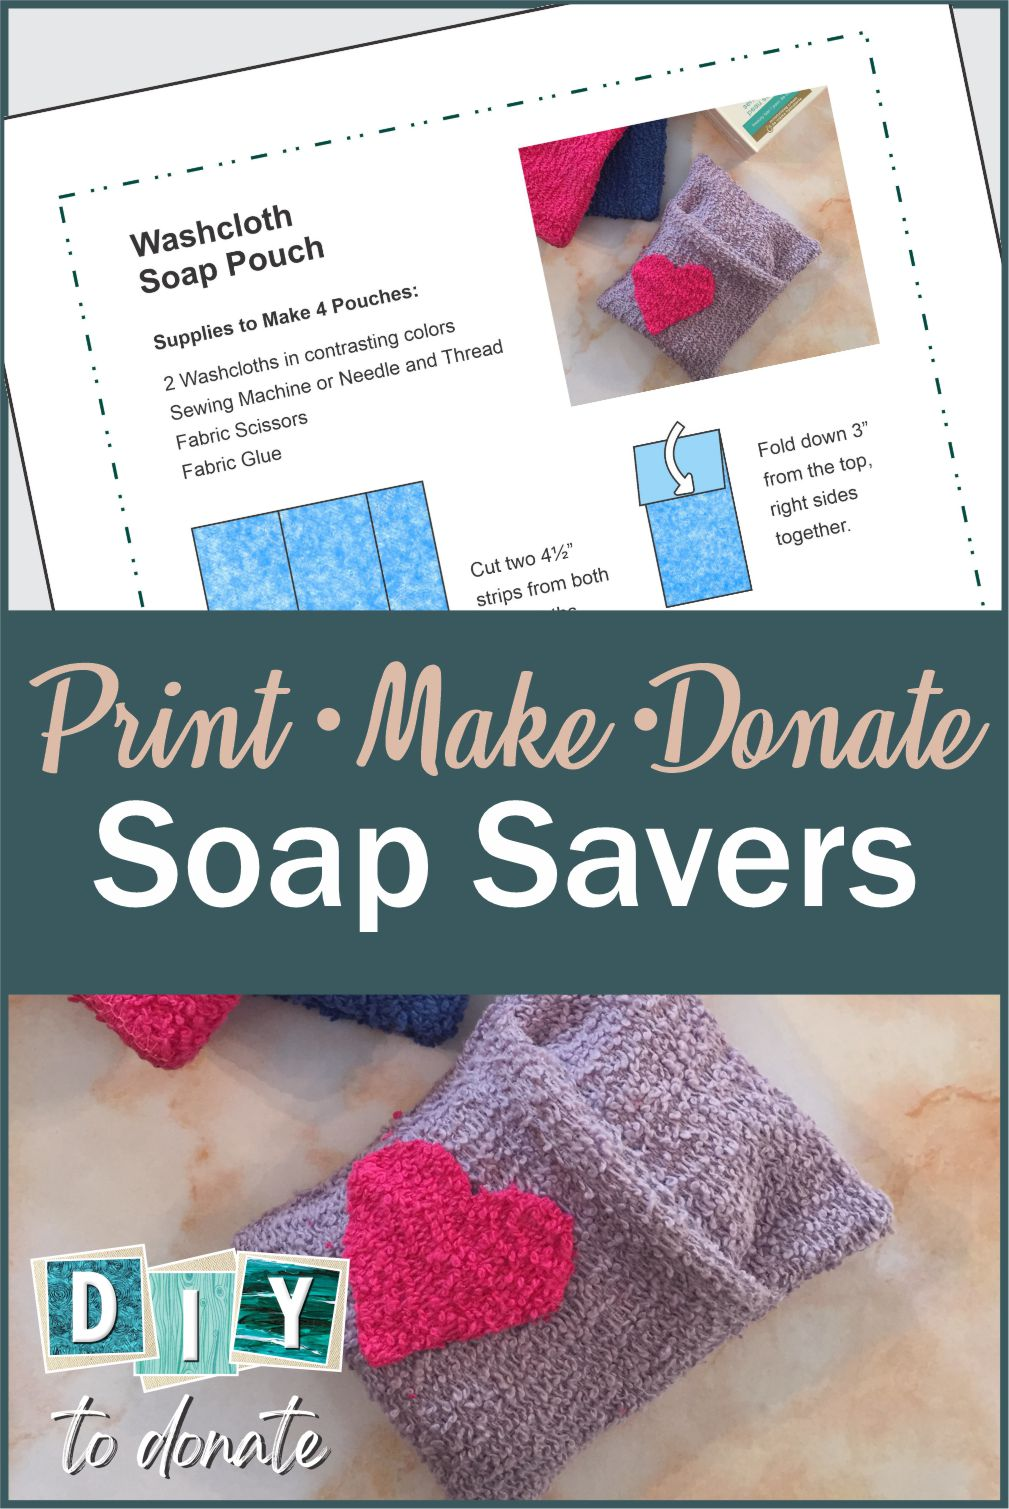 Make soap saver pouches to donate to kids in transition. They will enjoy using their own pouch to wash thoroughly, helping to prevent illness. #diytodonate #diy #soapsavers #donate #donations #giveback #craft #craftstoshare #washyourhands